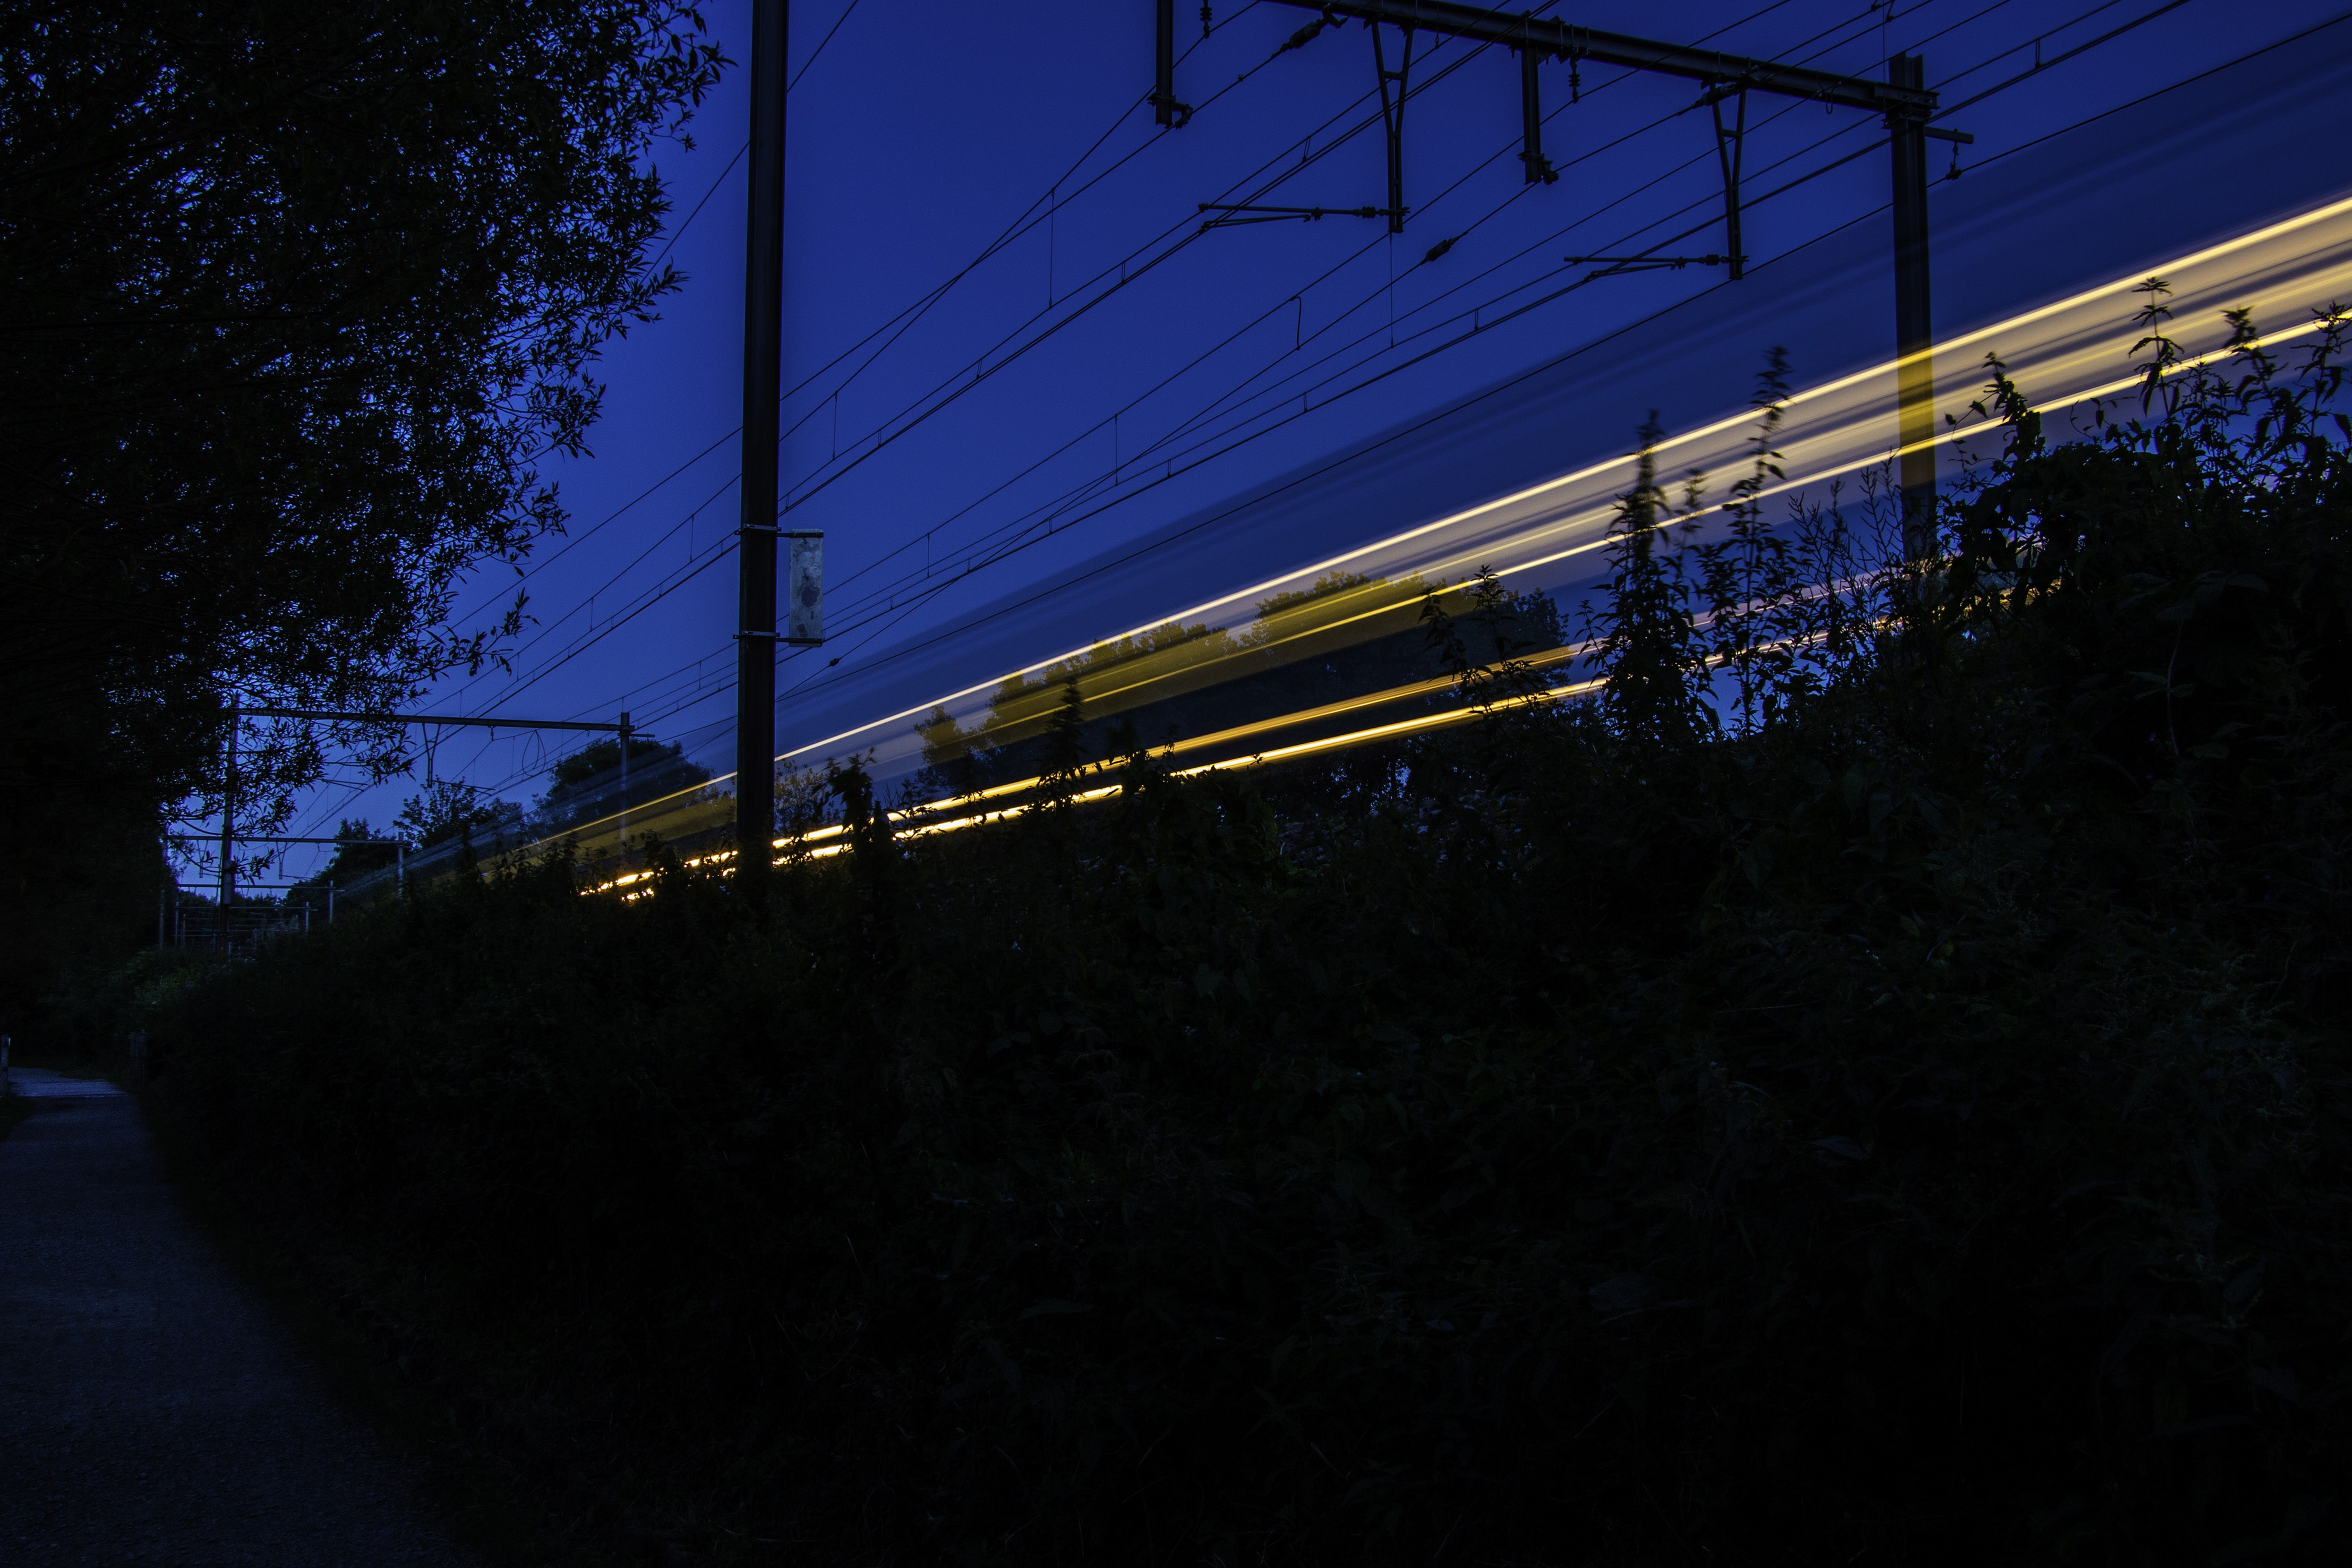 time lapse photography of train rail